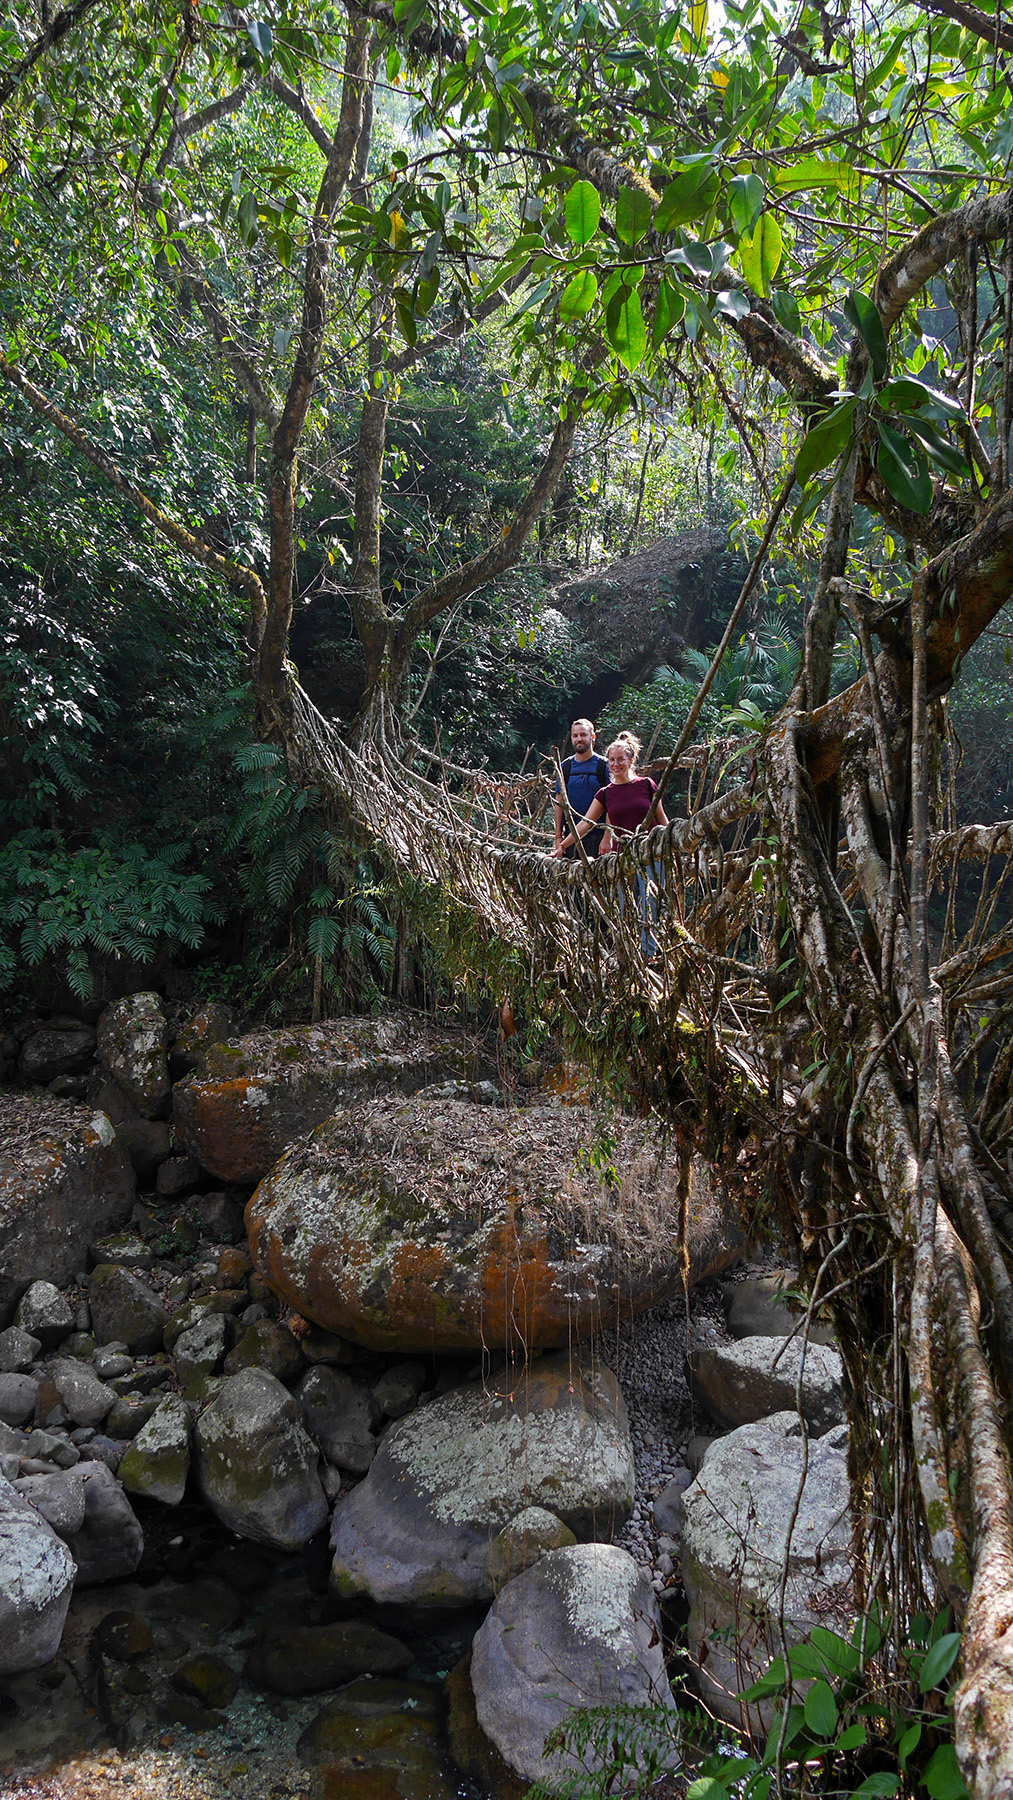 The longest living root bridge of the area